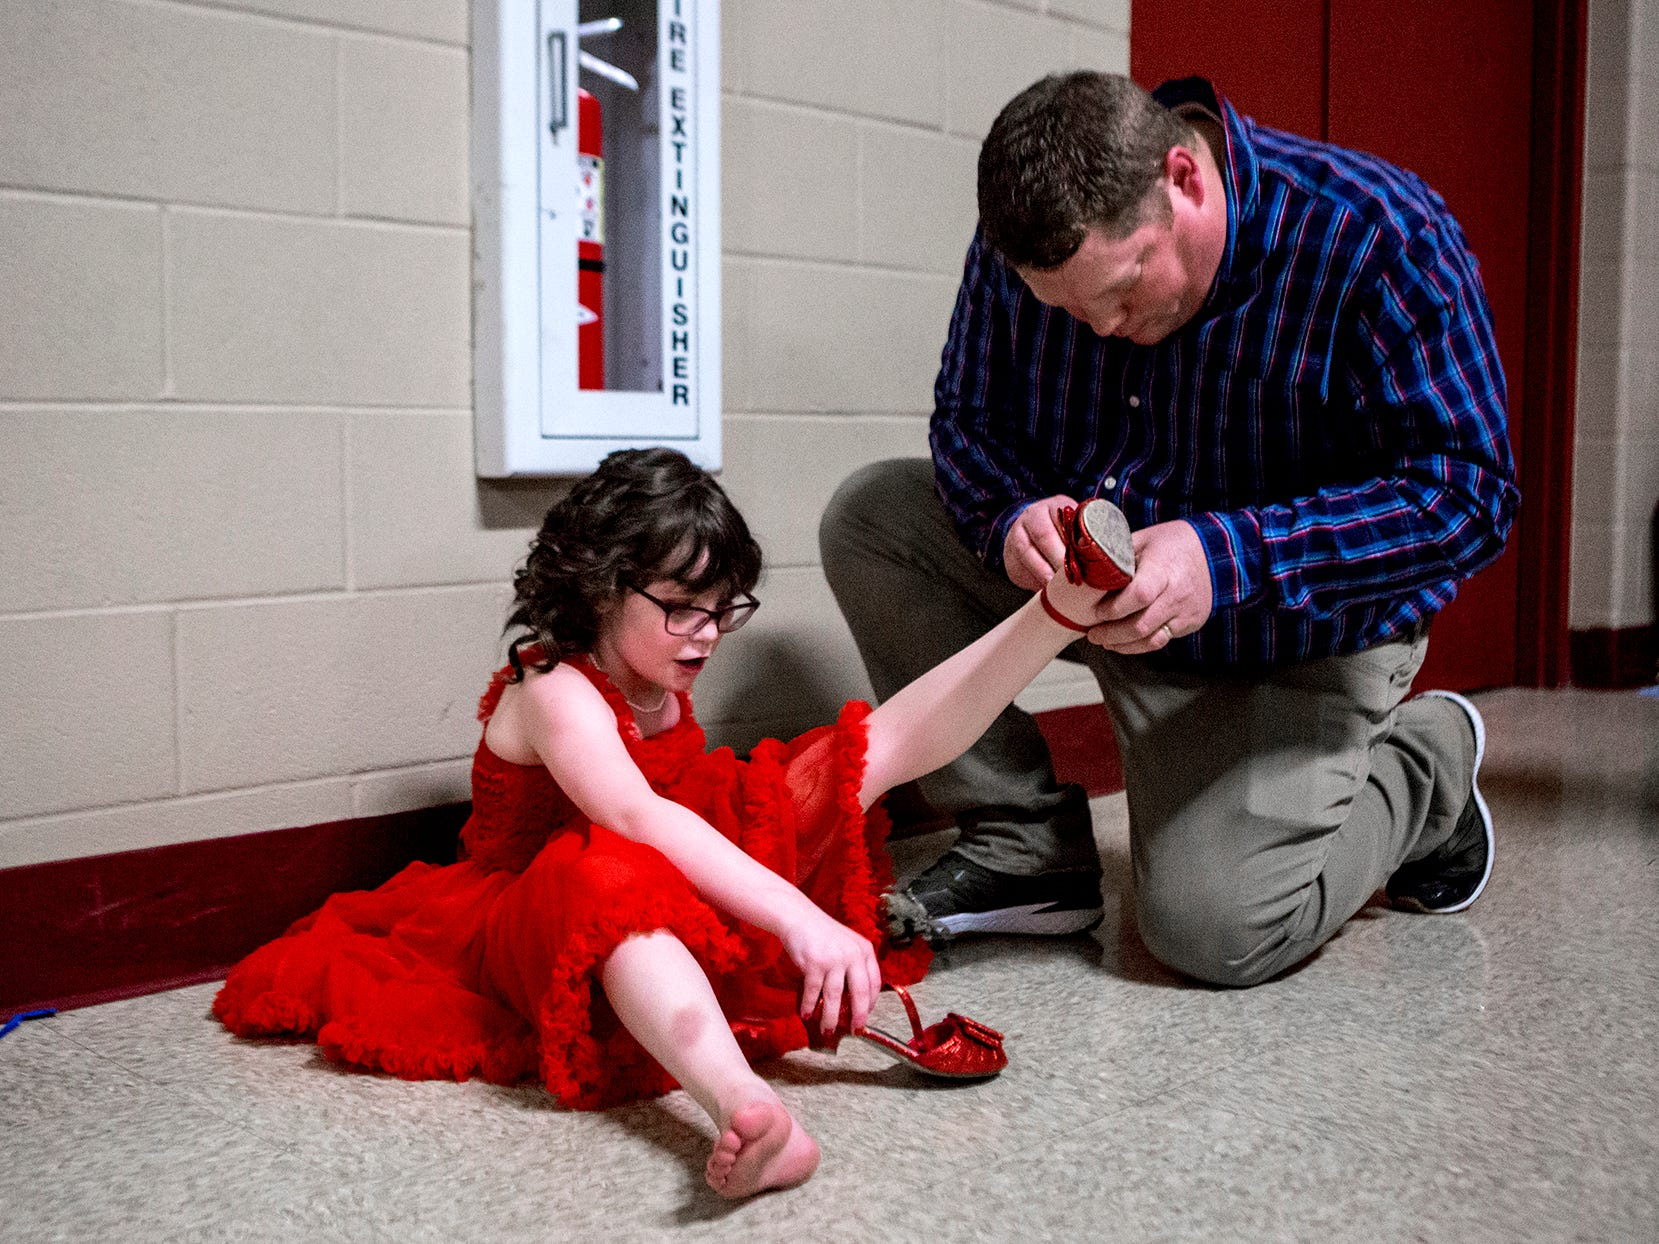 Brian McGuire puts the shoes back on his daughter, Brigid's feet halfway through the annual daddy daughter dance.